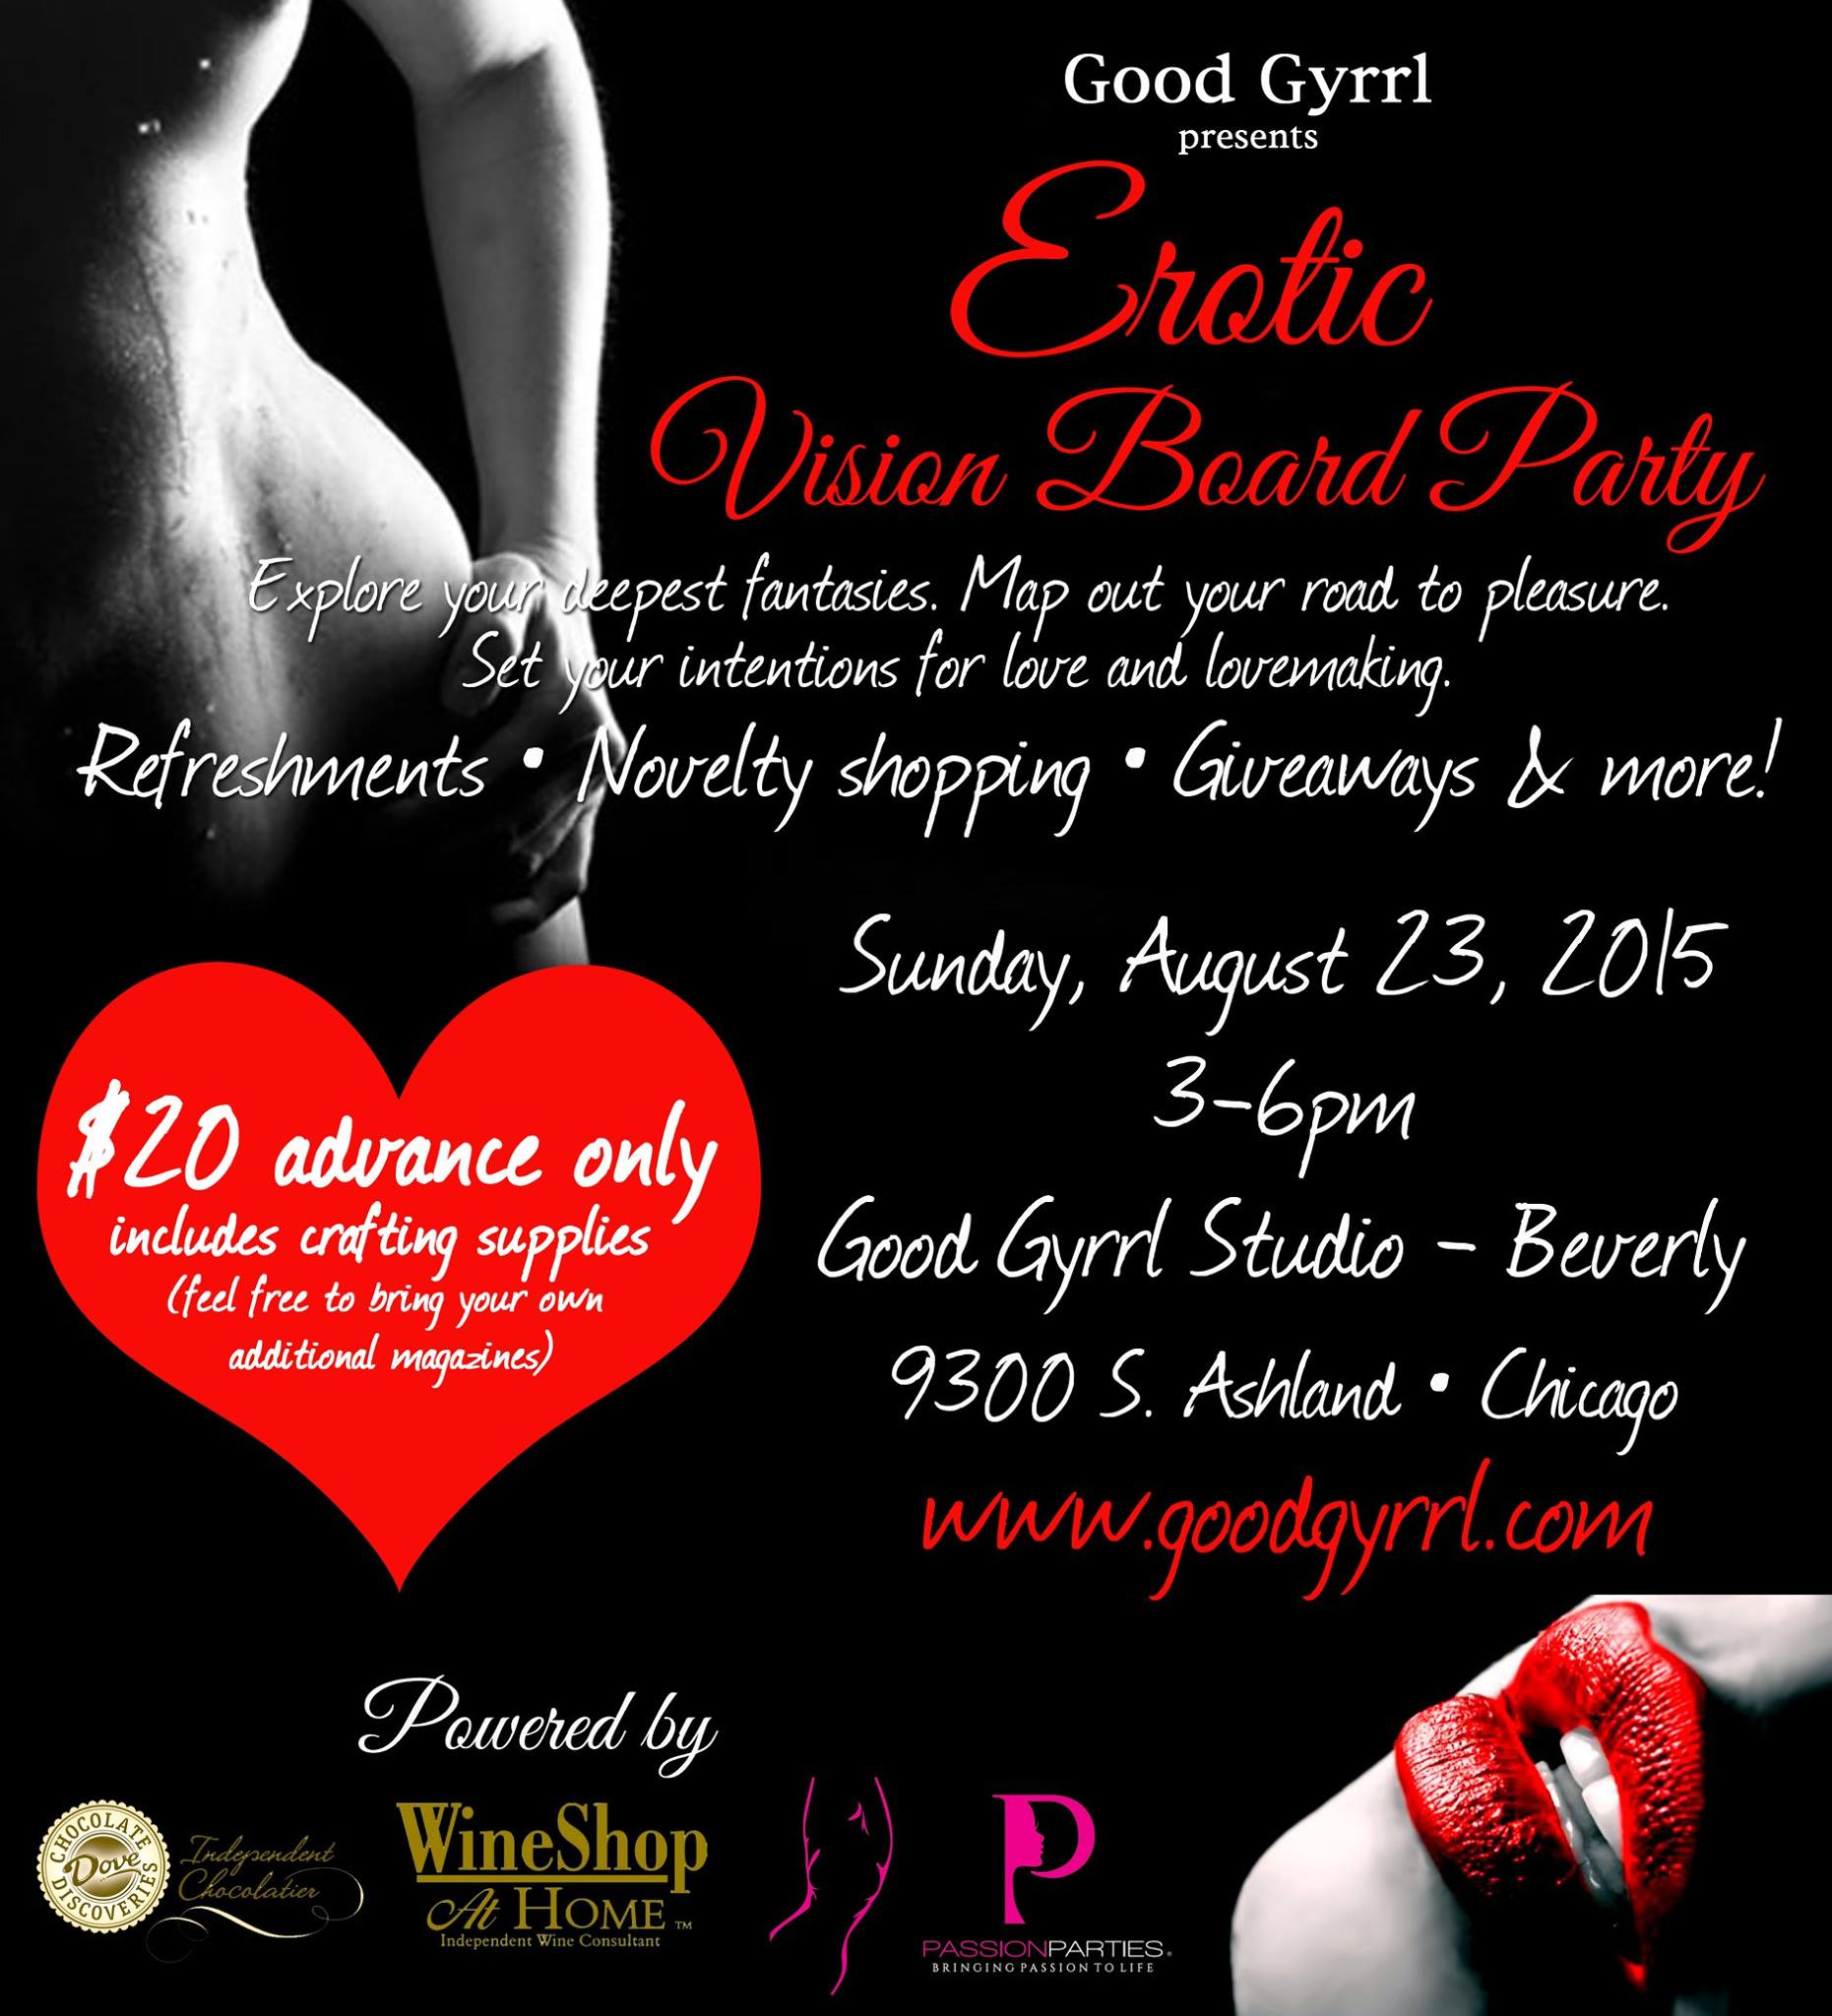 Erotic Vision Board Party